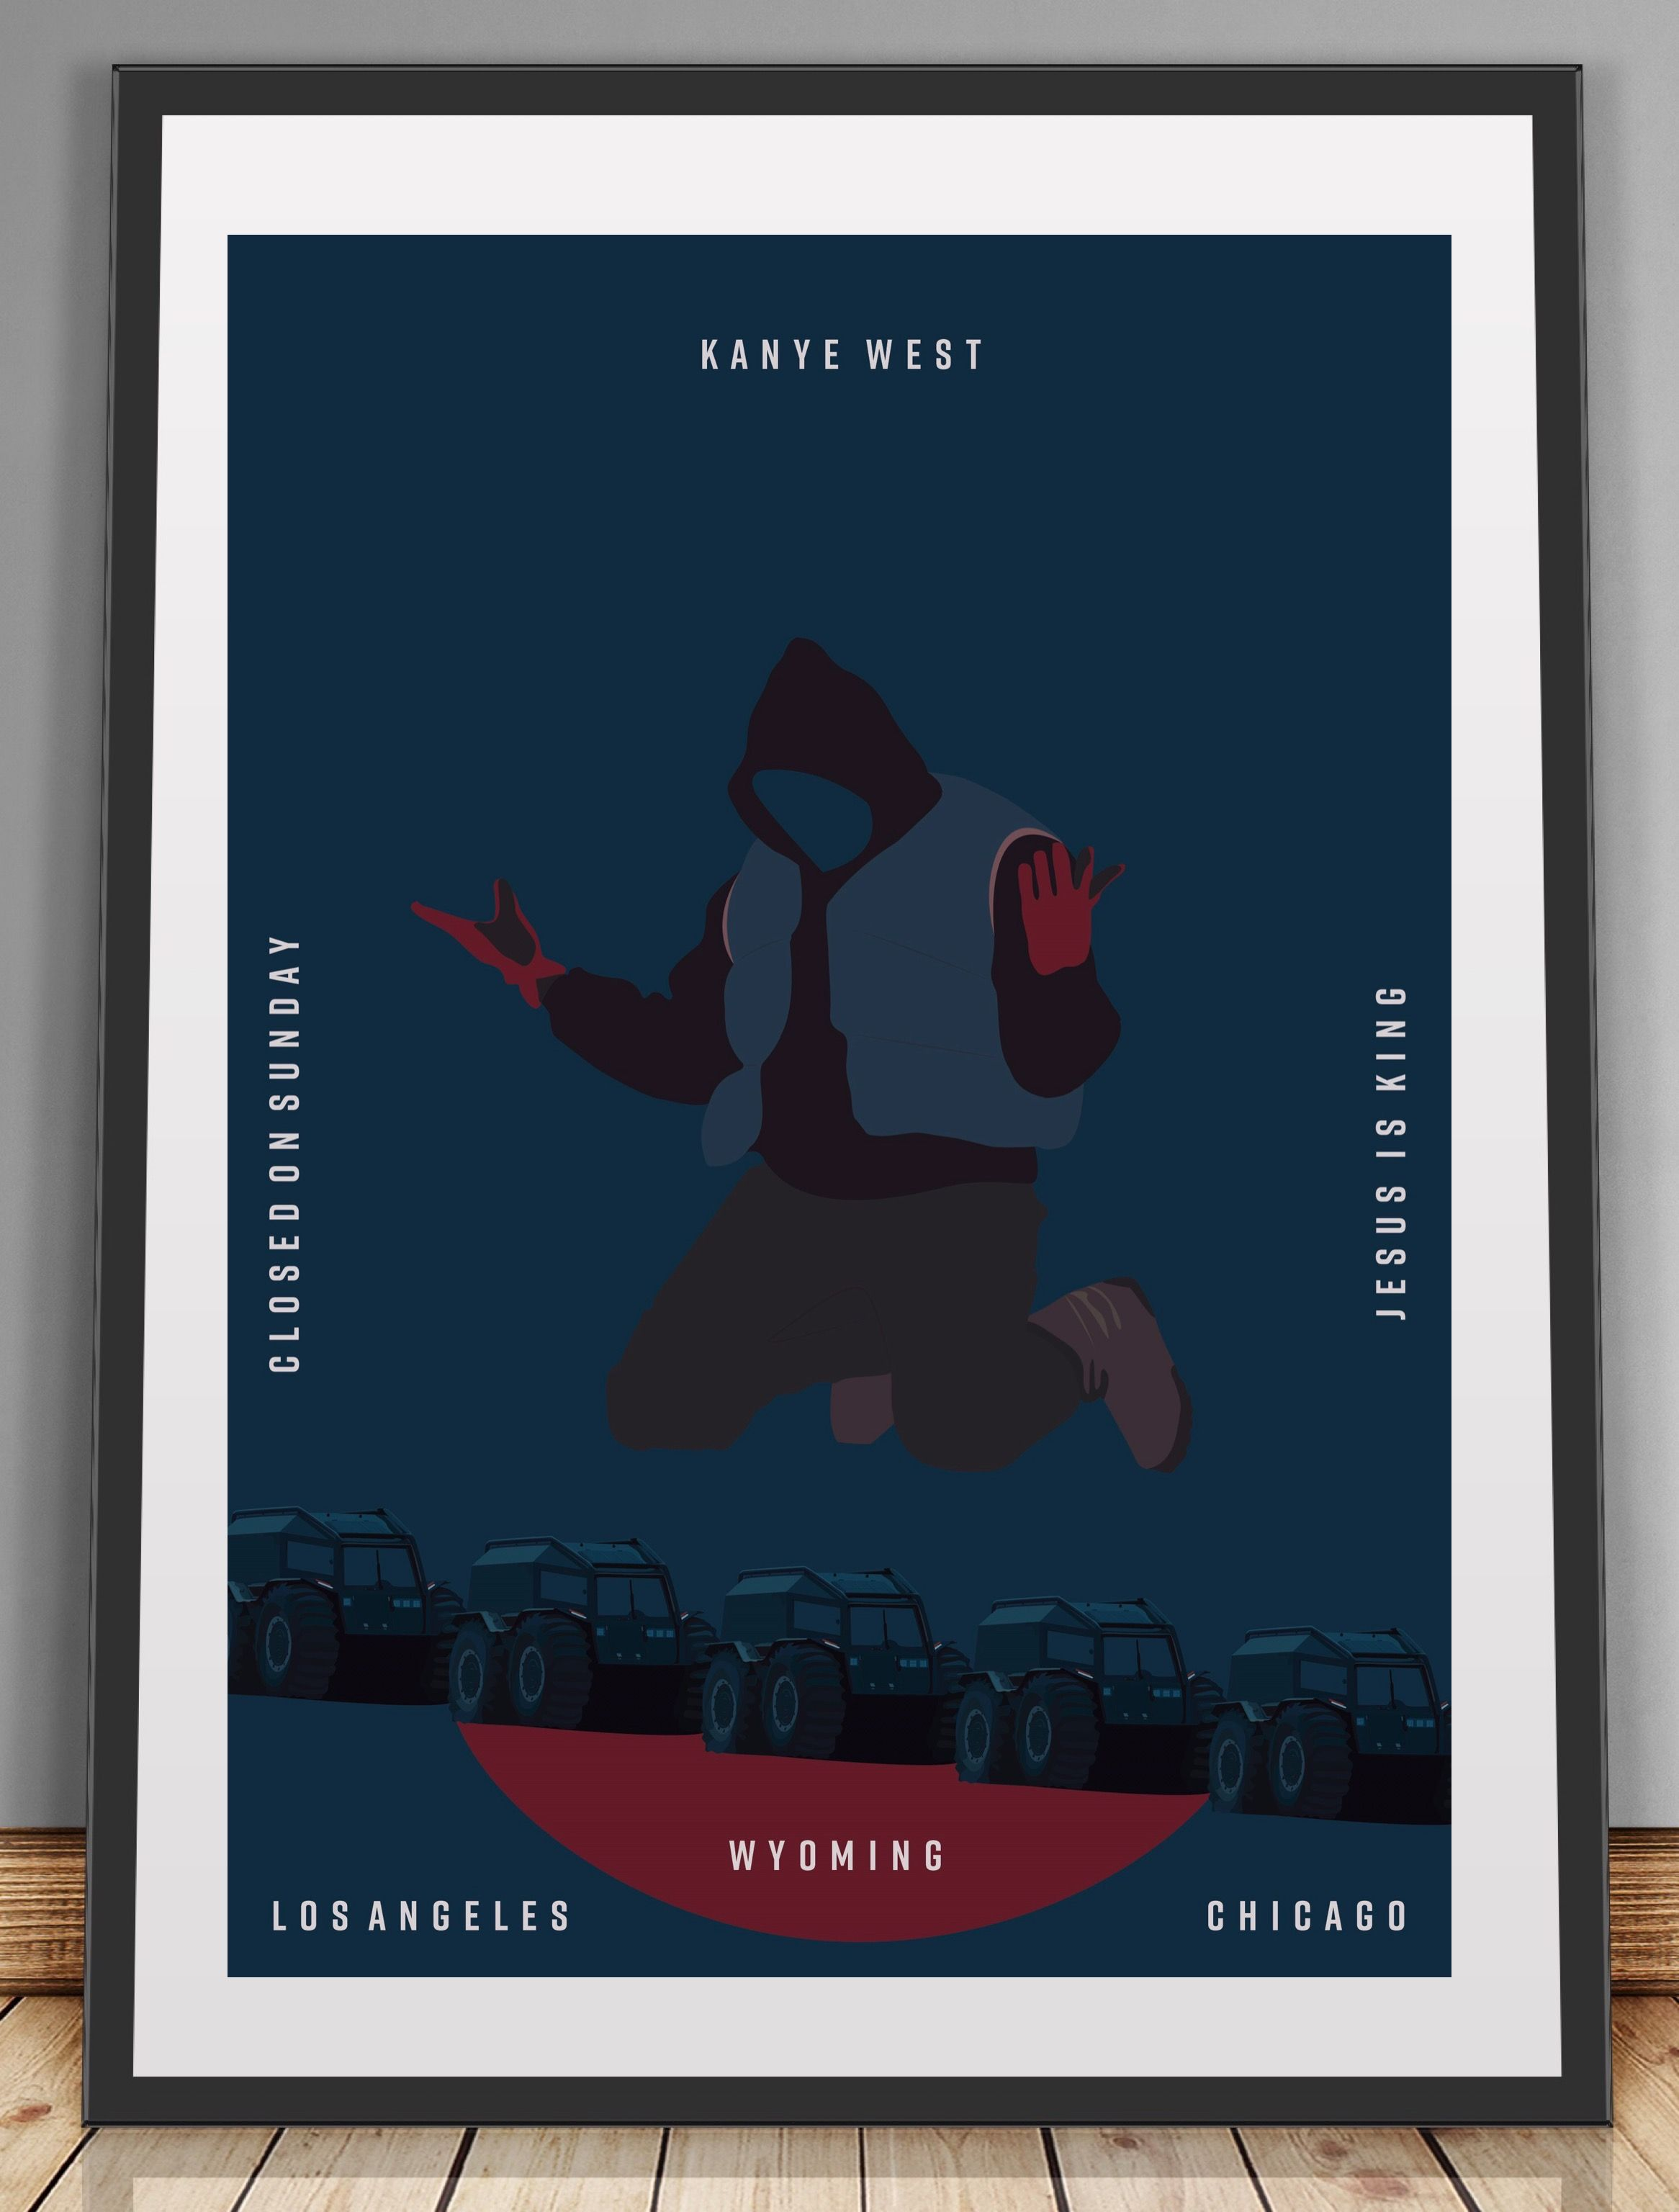 Closed On Sunday Kanye West Wyoming Kanye Poster Wall Art Minimalist Art Jesus Is King Artwork Hiphop Poster Rap Poster Chicago In 2020 Hip Hop Poster Minimalist Wall Art Kanye West